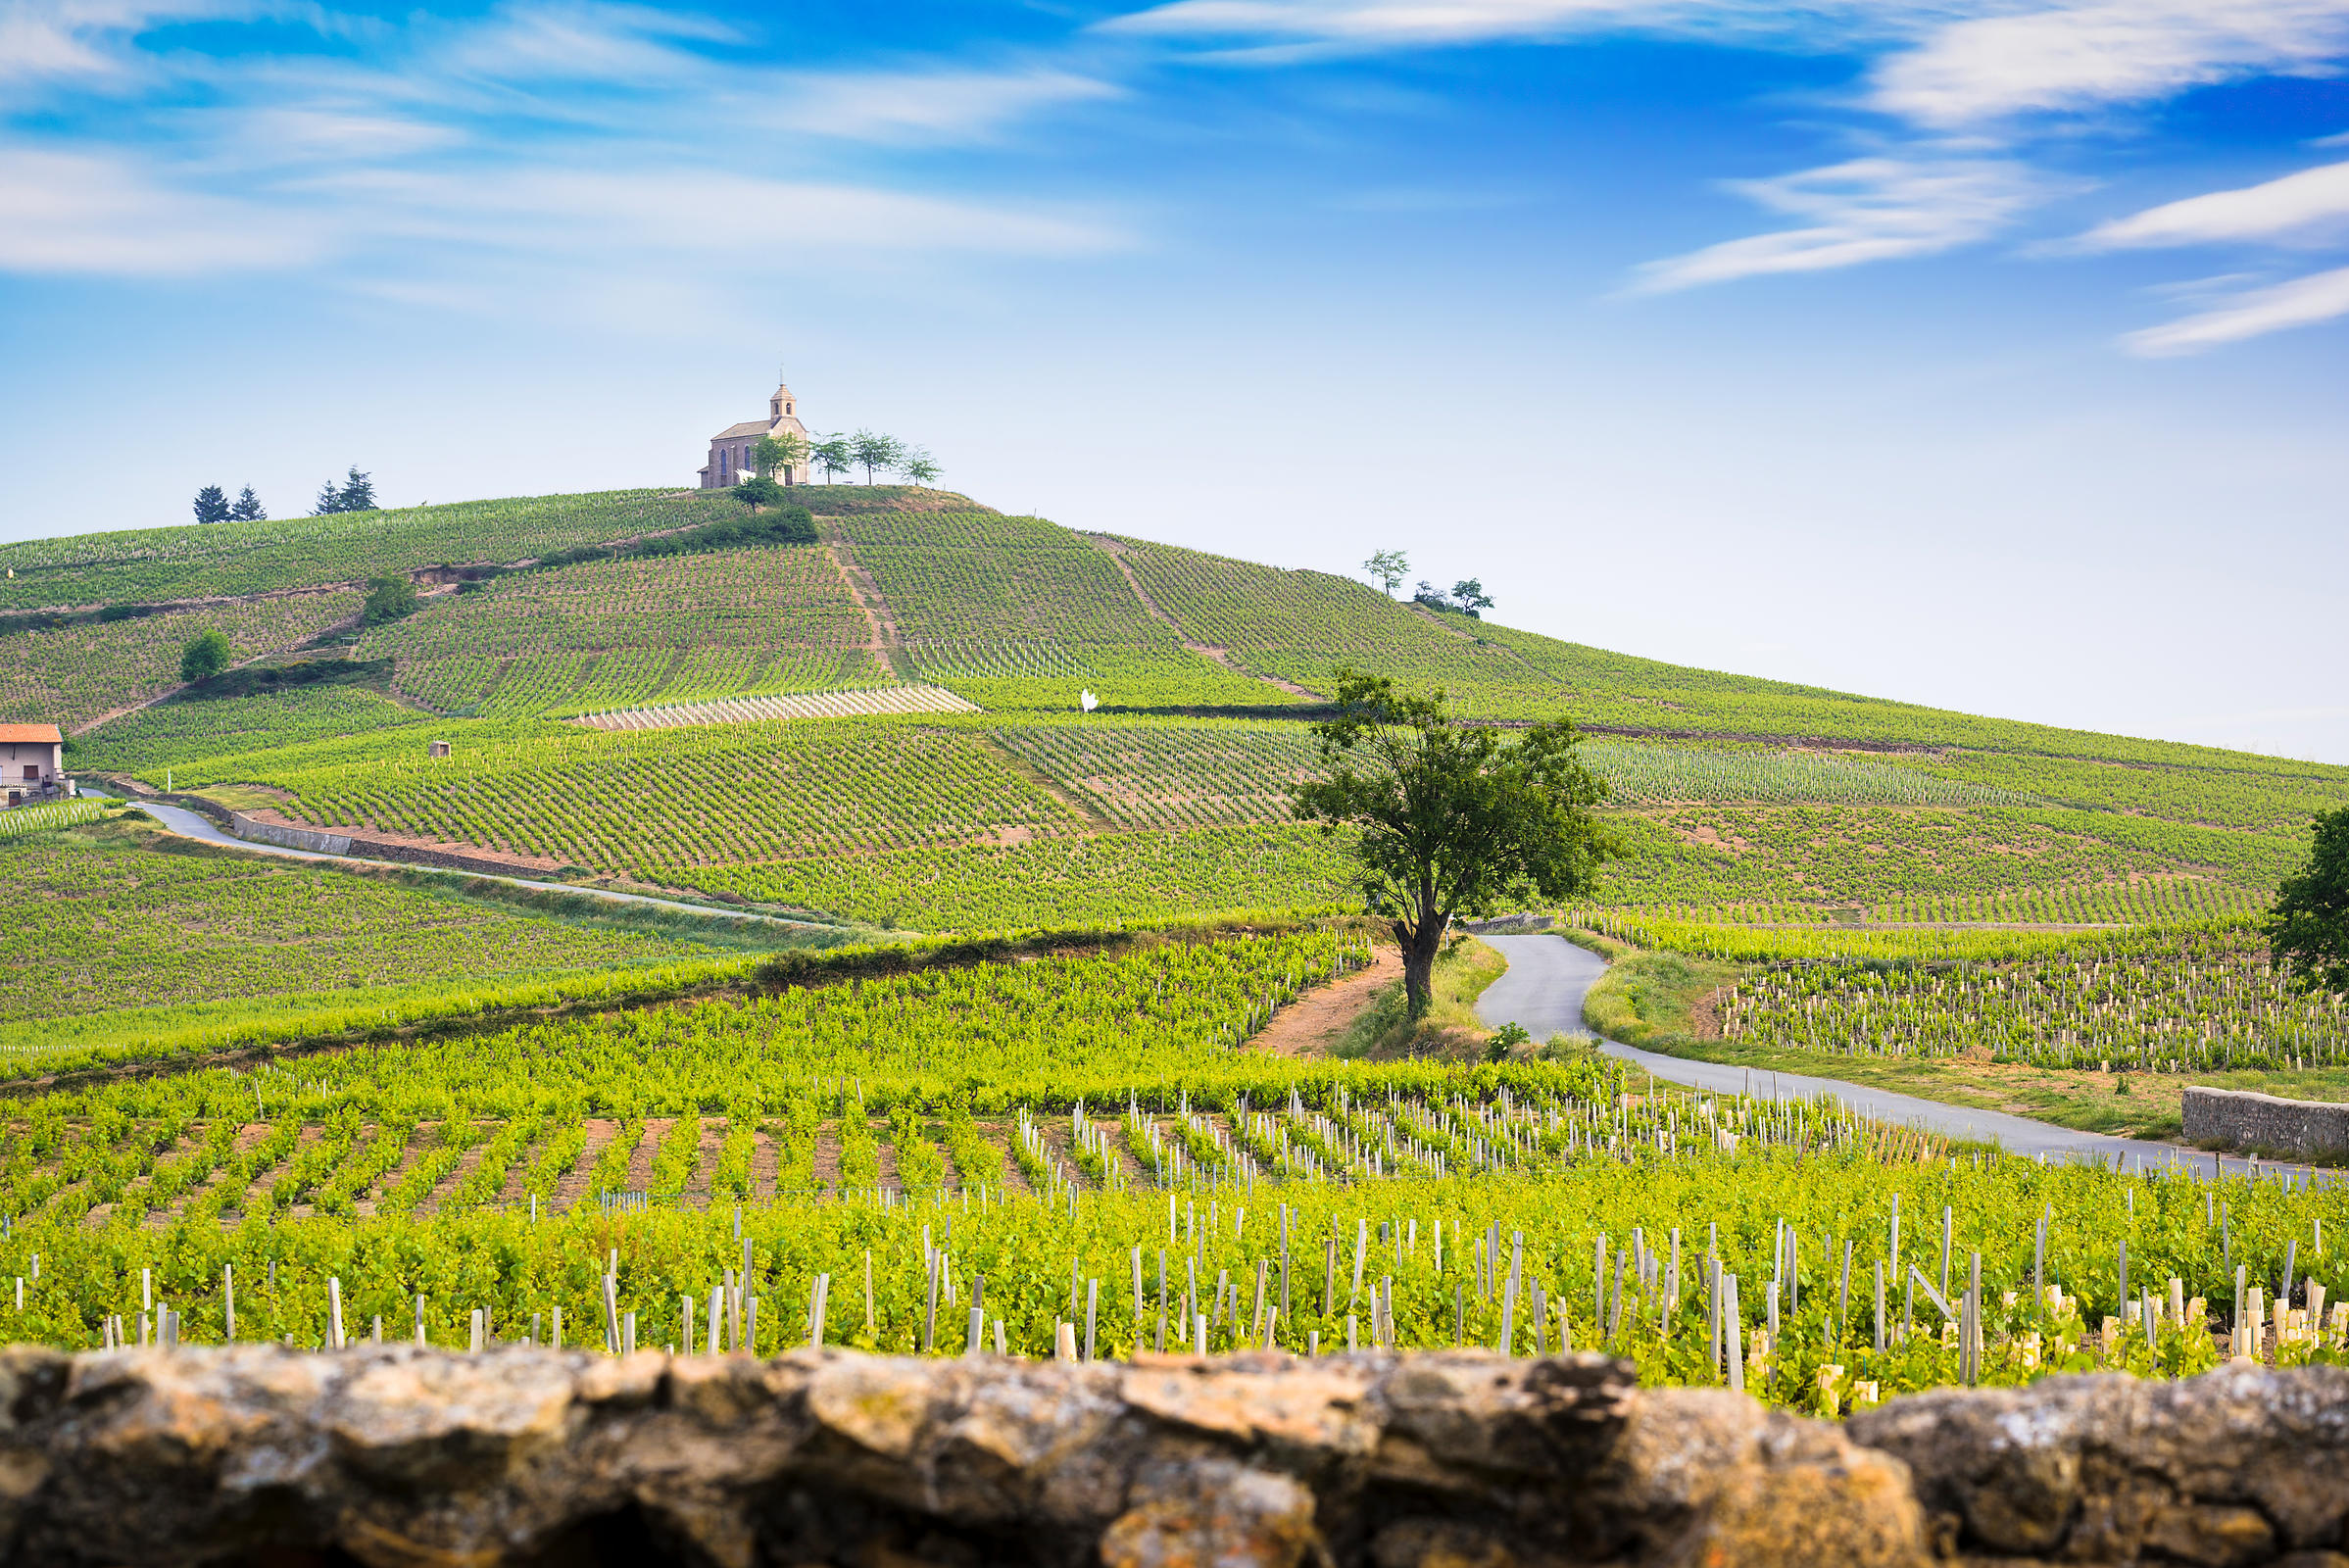 Church_of_Fleurie_village_and_vineyards_of_Beaujolais-5